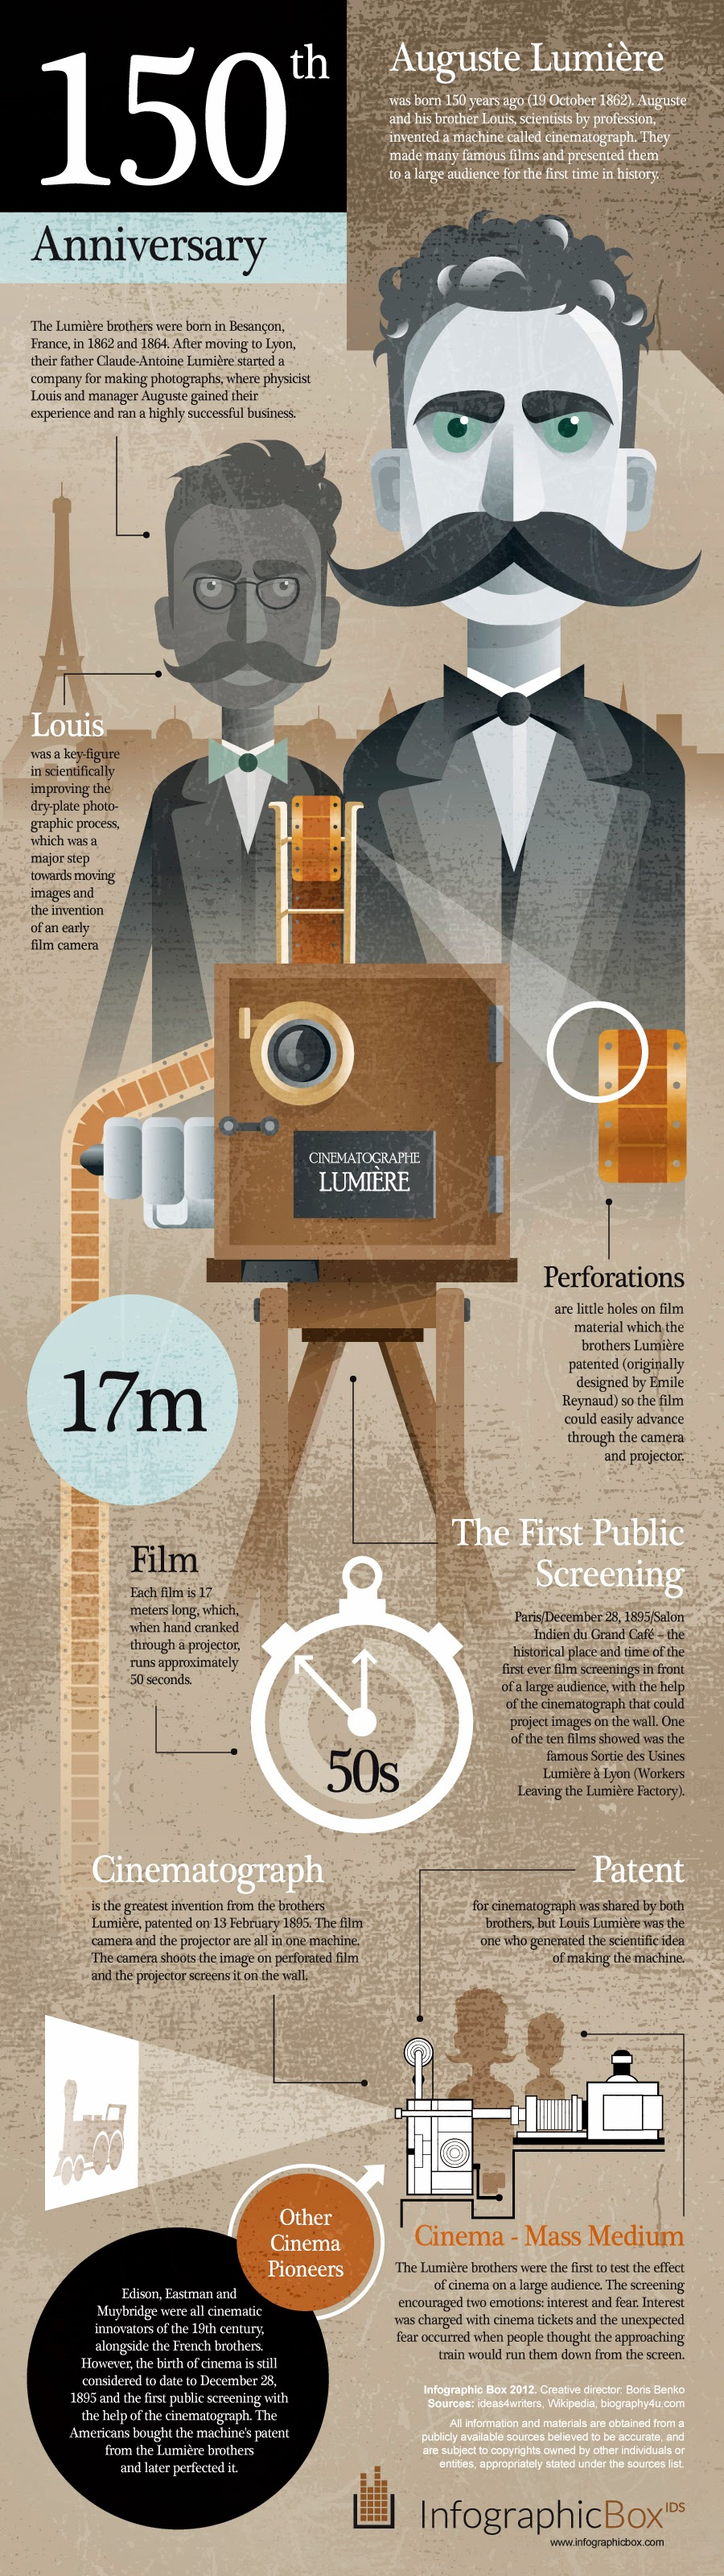 Auguste Lumiere - 150th Anniversary, infographic by Boris Benko